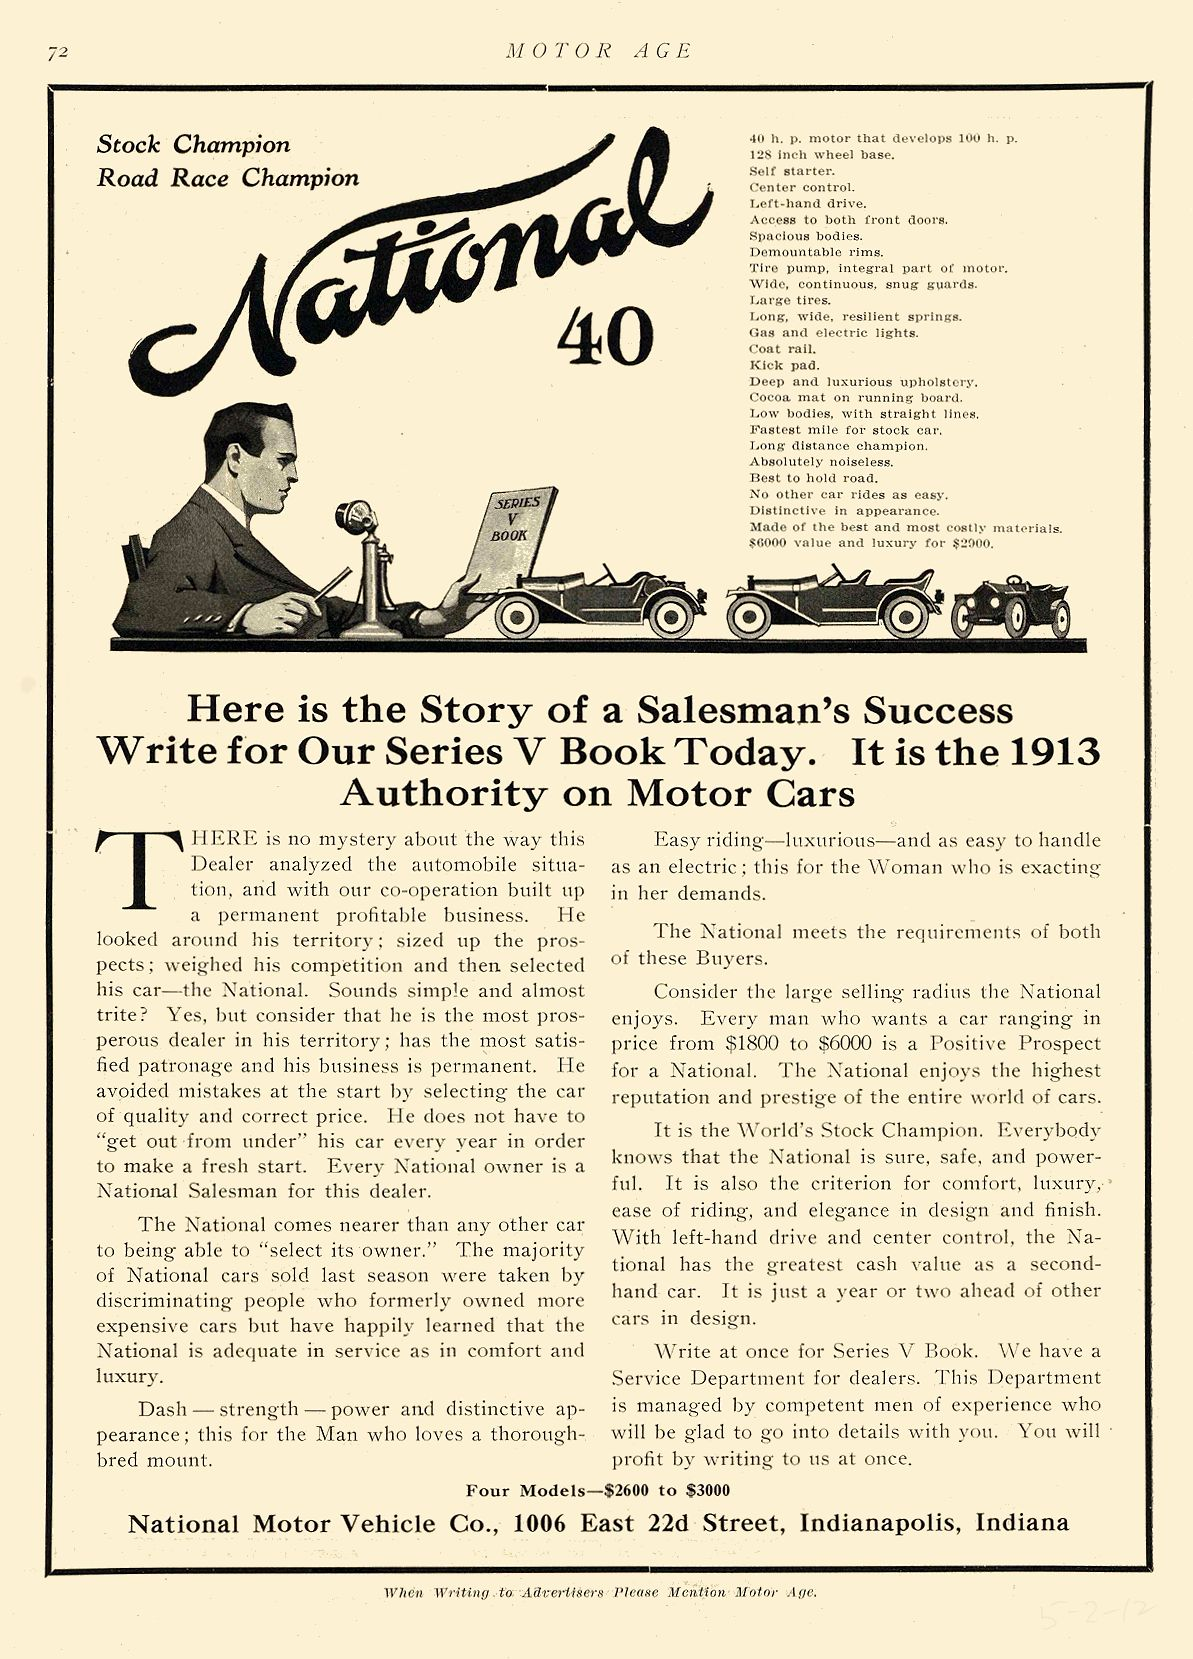 1912 5 2 NATIONAL National 40 Stock Champion Road Race Champion National Motor Vehicle Co. Indianapolis, IND MOTOR AGE May 2, 1912 page 72 8.5″x12″